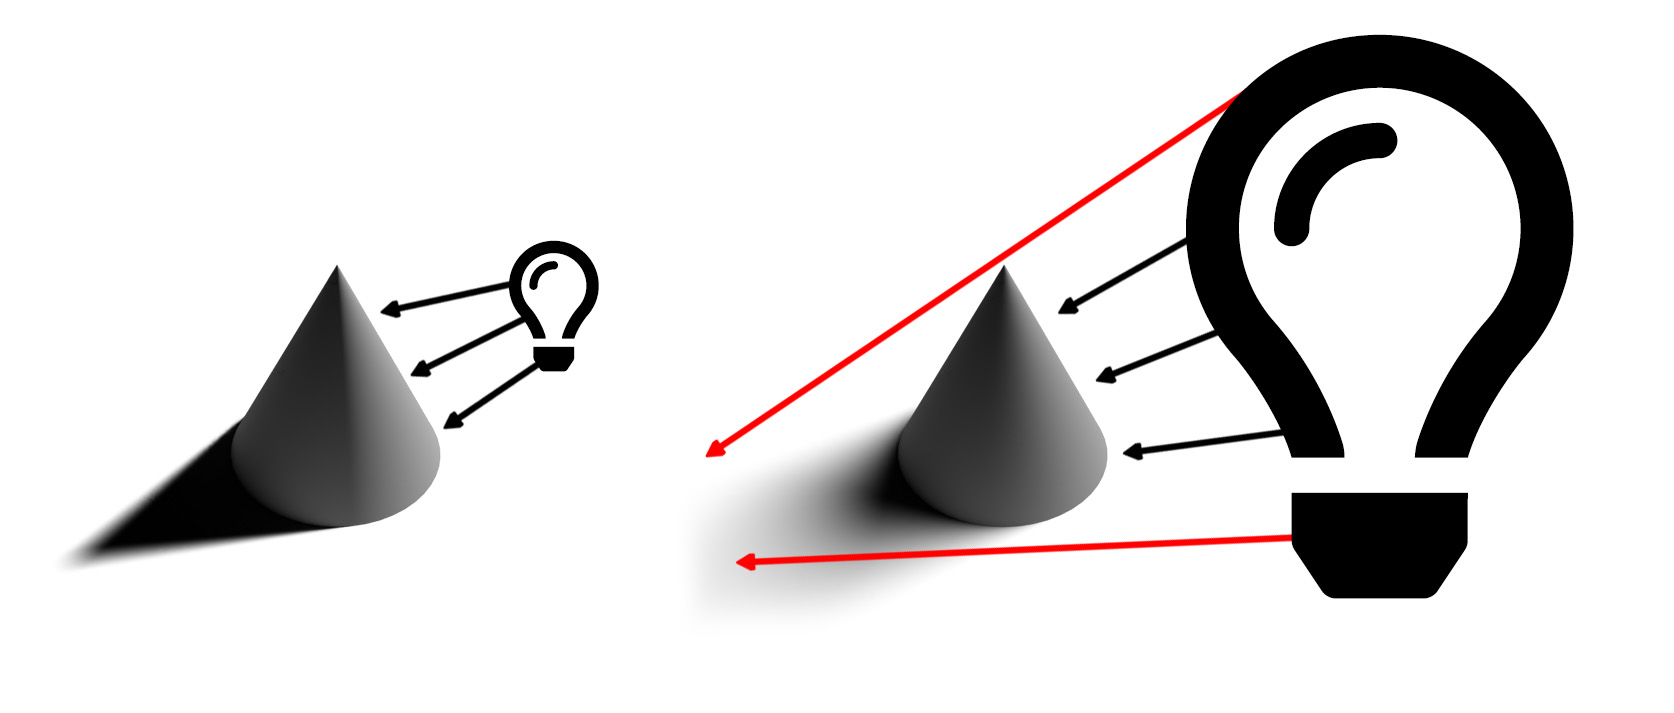 Diagram illustrating the effect that lighting intensity, direction and size have on the way that a 3D object is illuminated and the shadow it casts